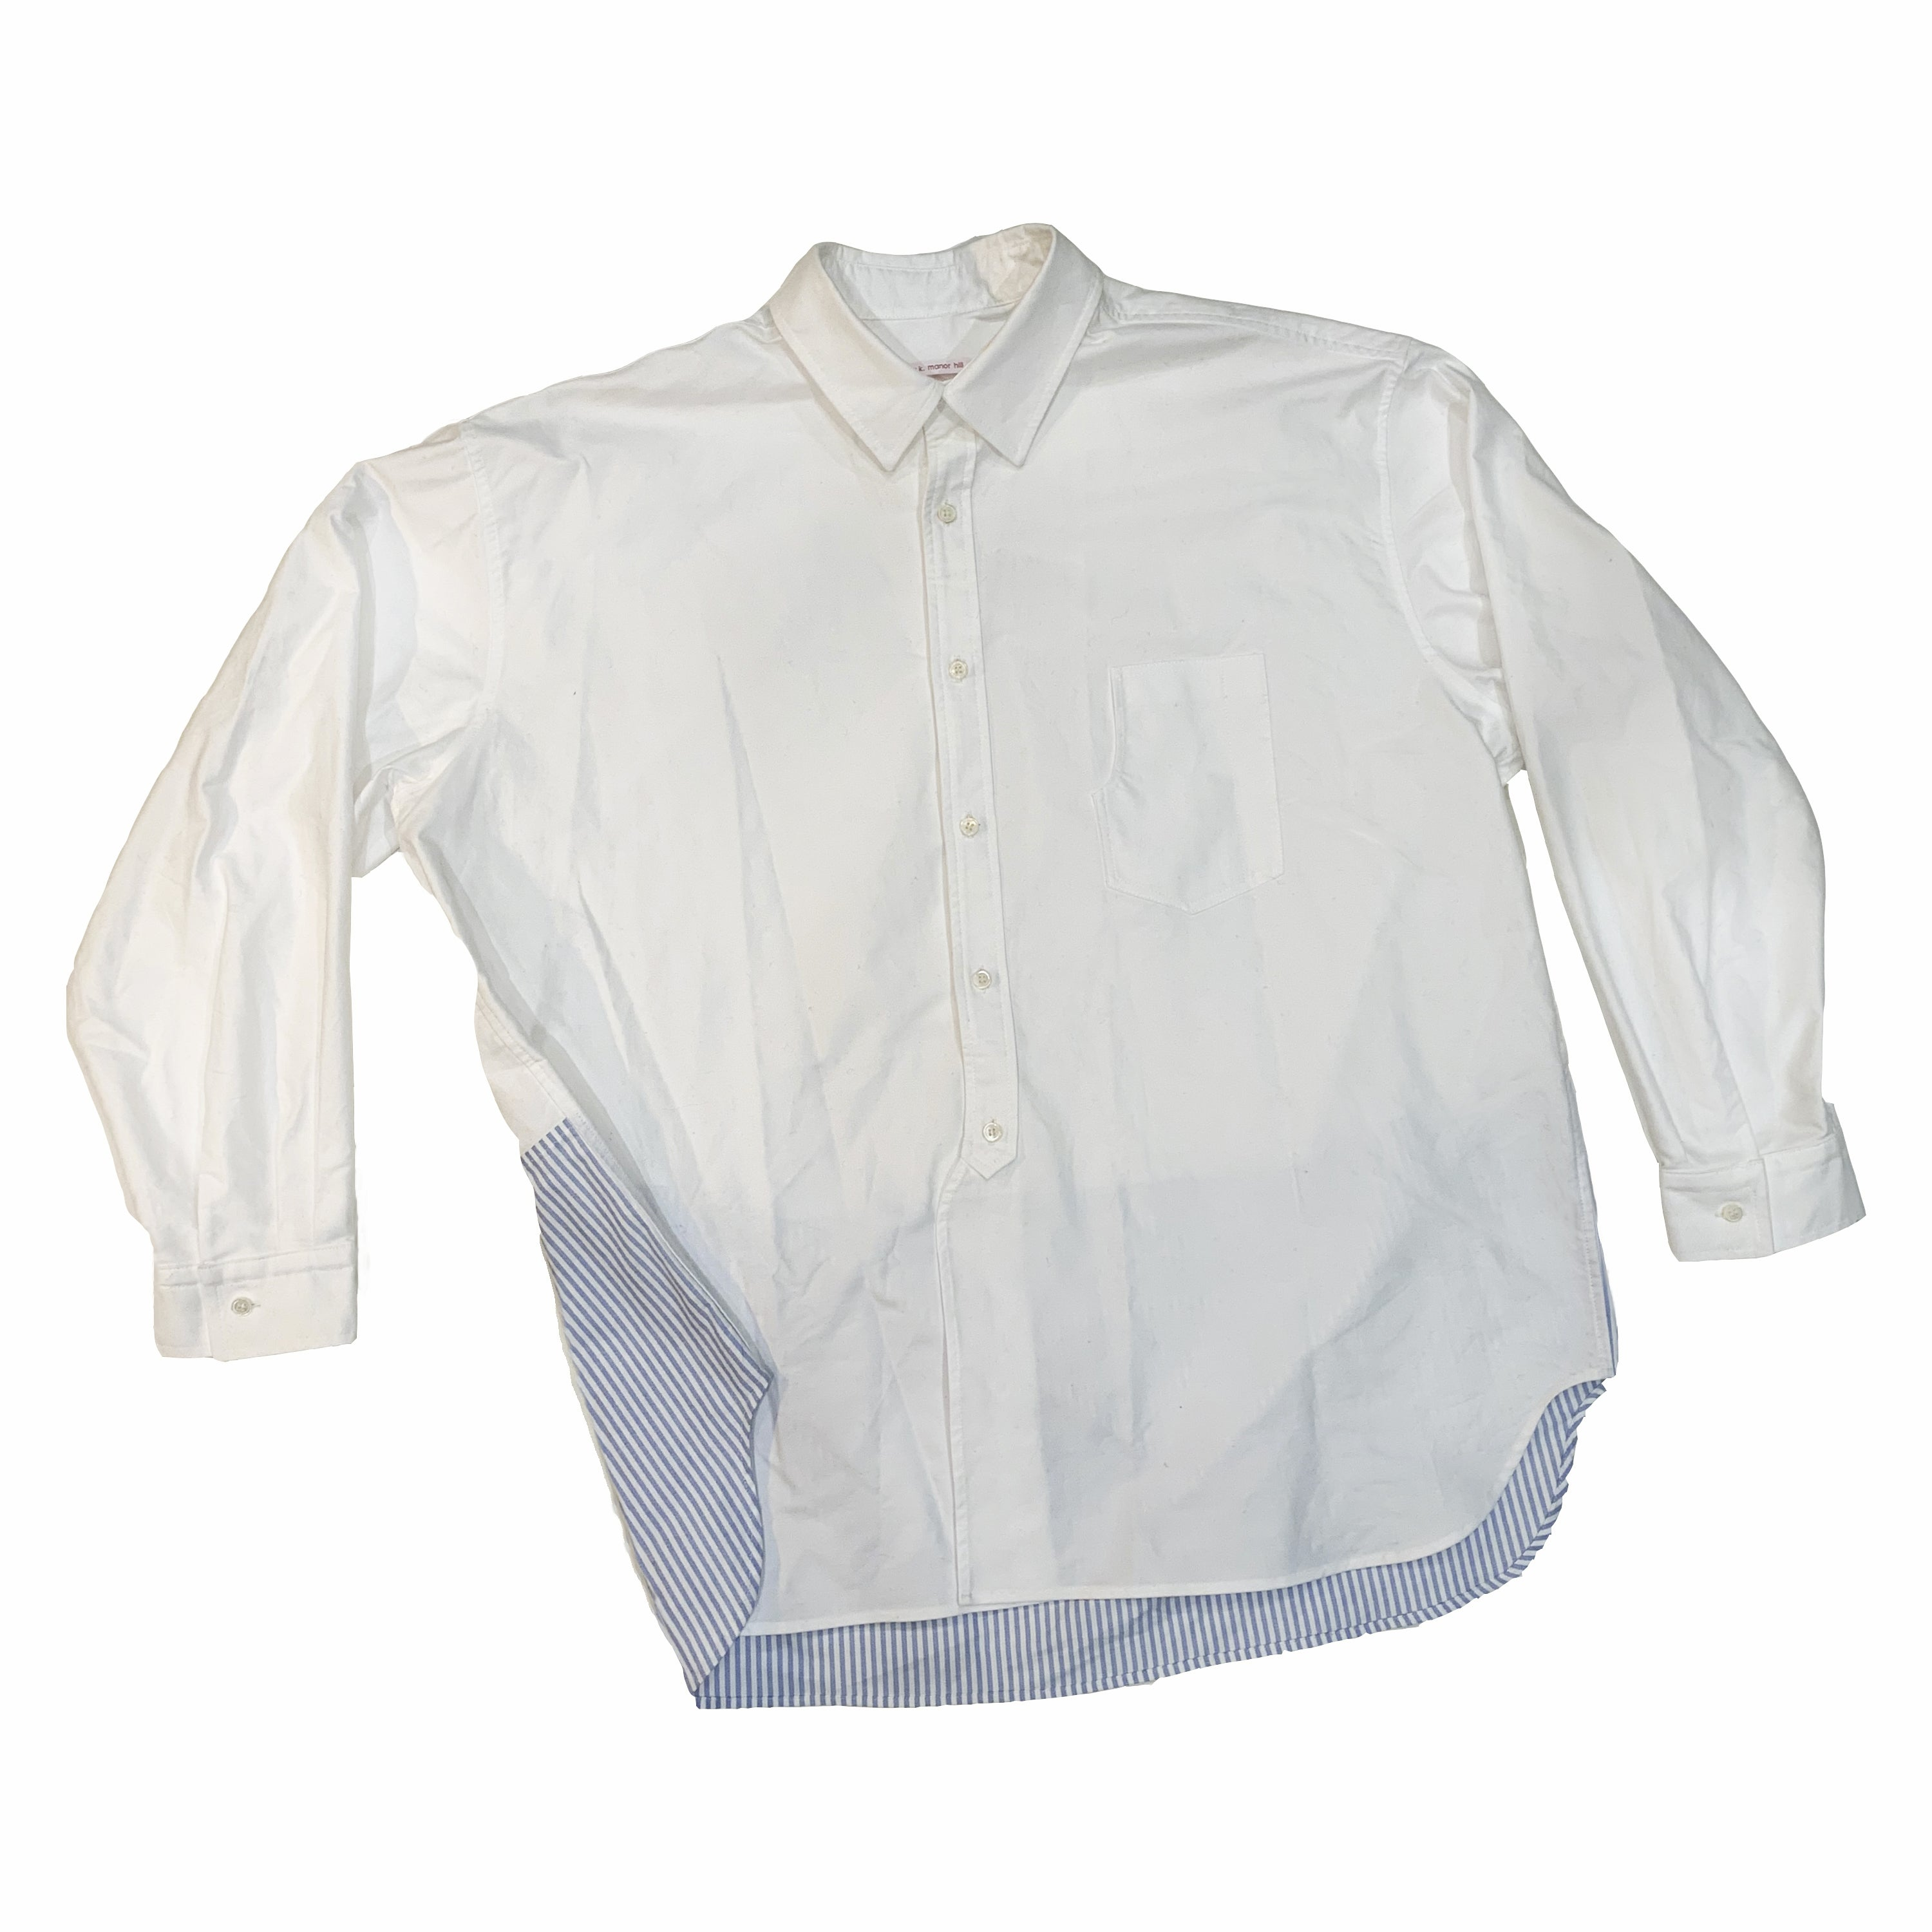 Artisan Shirt - White Cotton Oxford